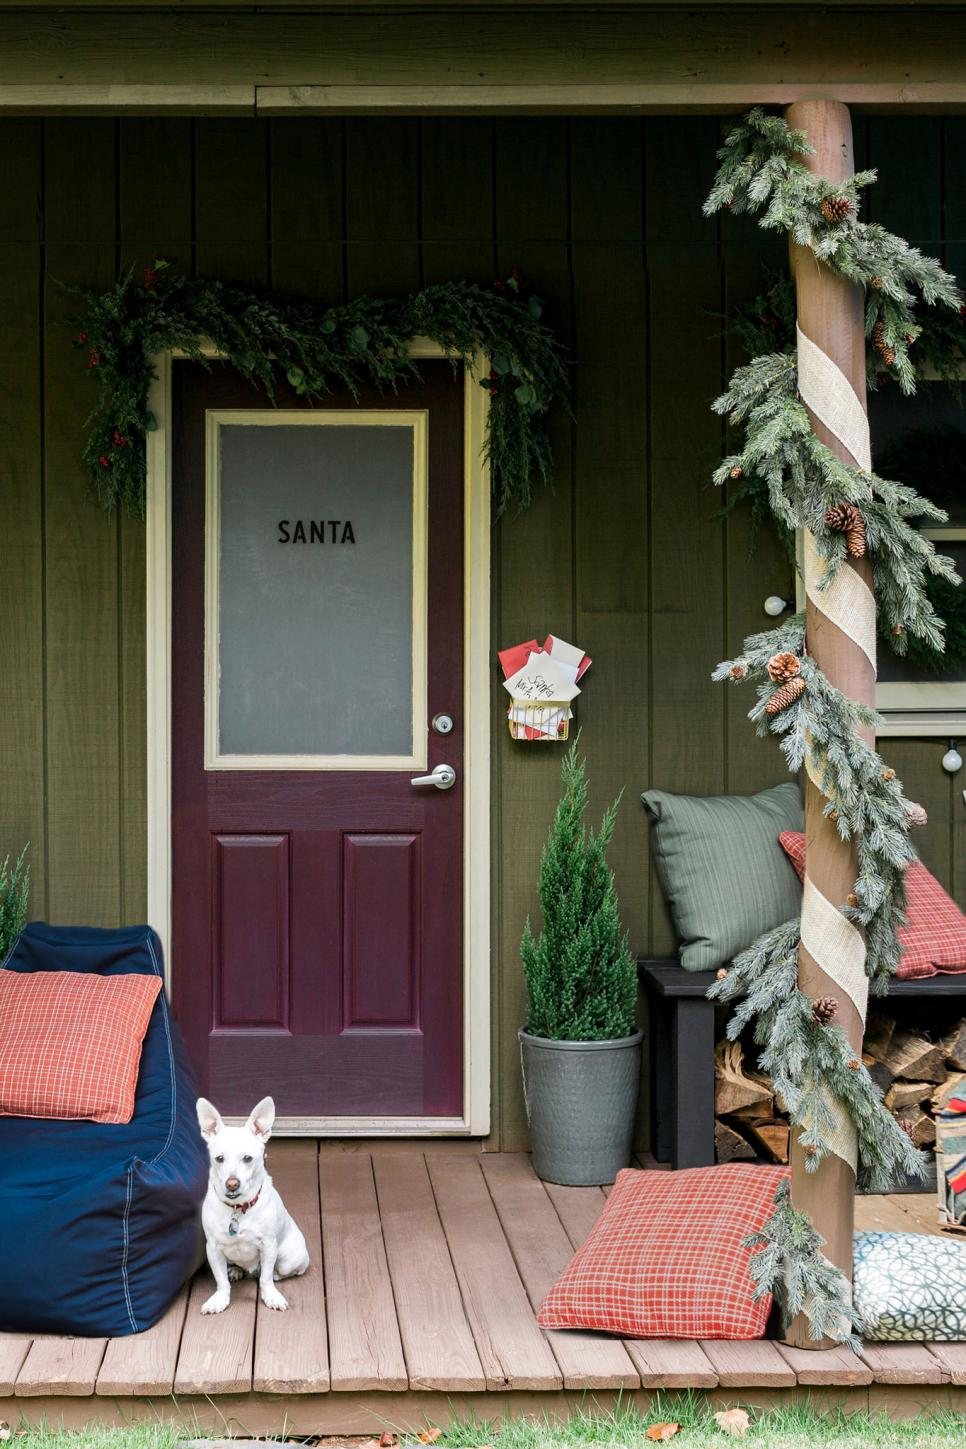 How to Turn Your Front Porch Into the North Pole | HGTV - photo#50